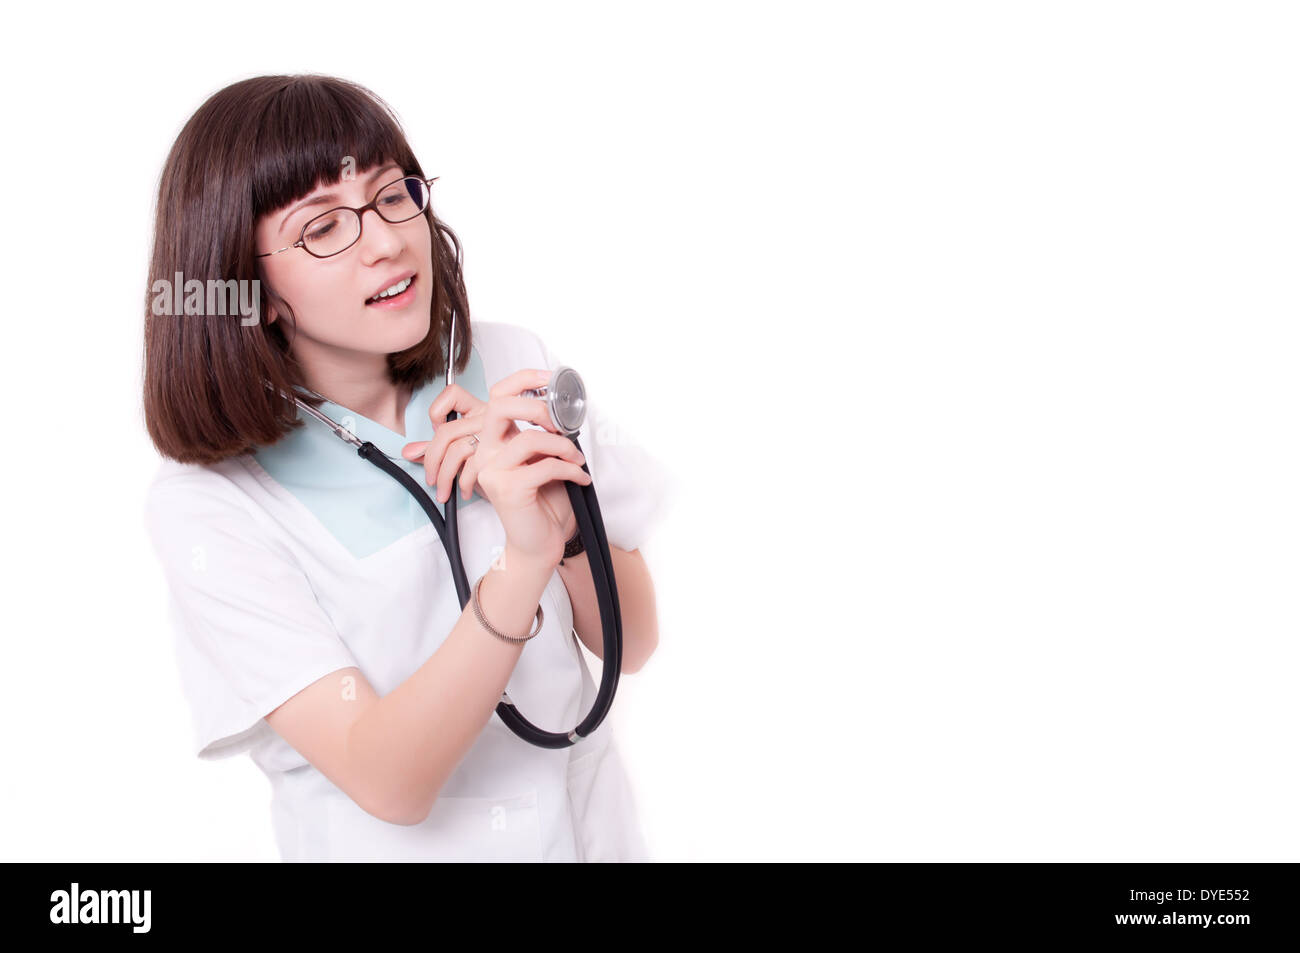 Young female doctor holding stethoscope and smiling - Stock Image